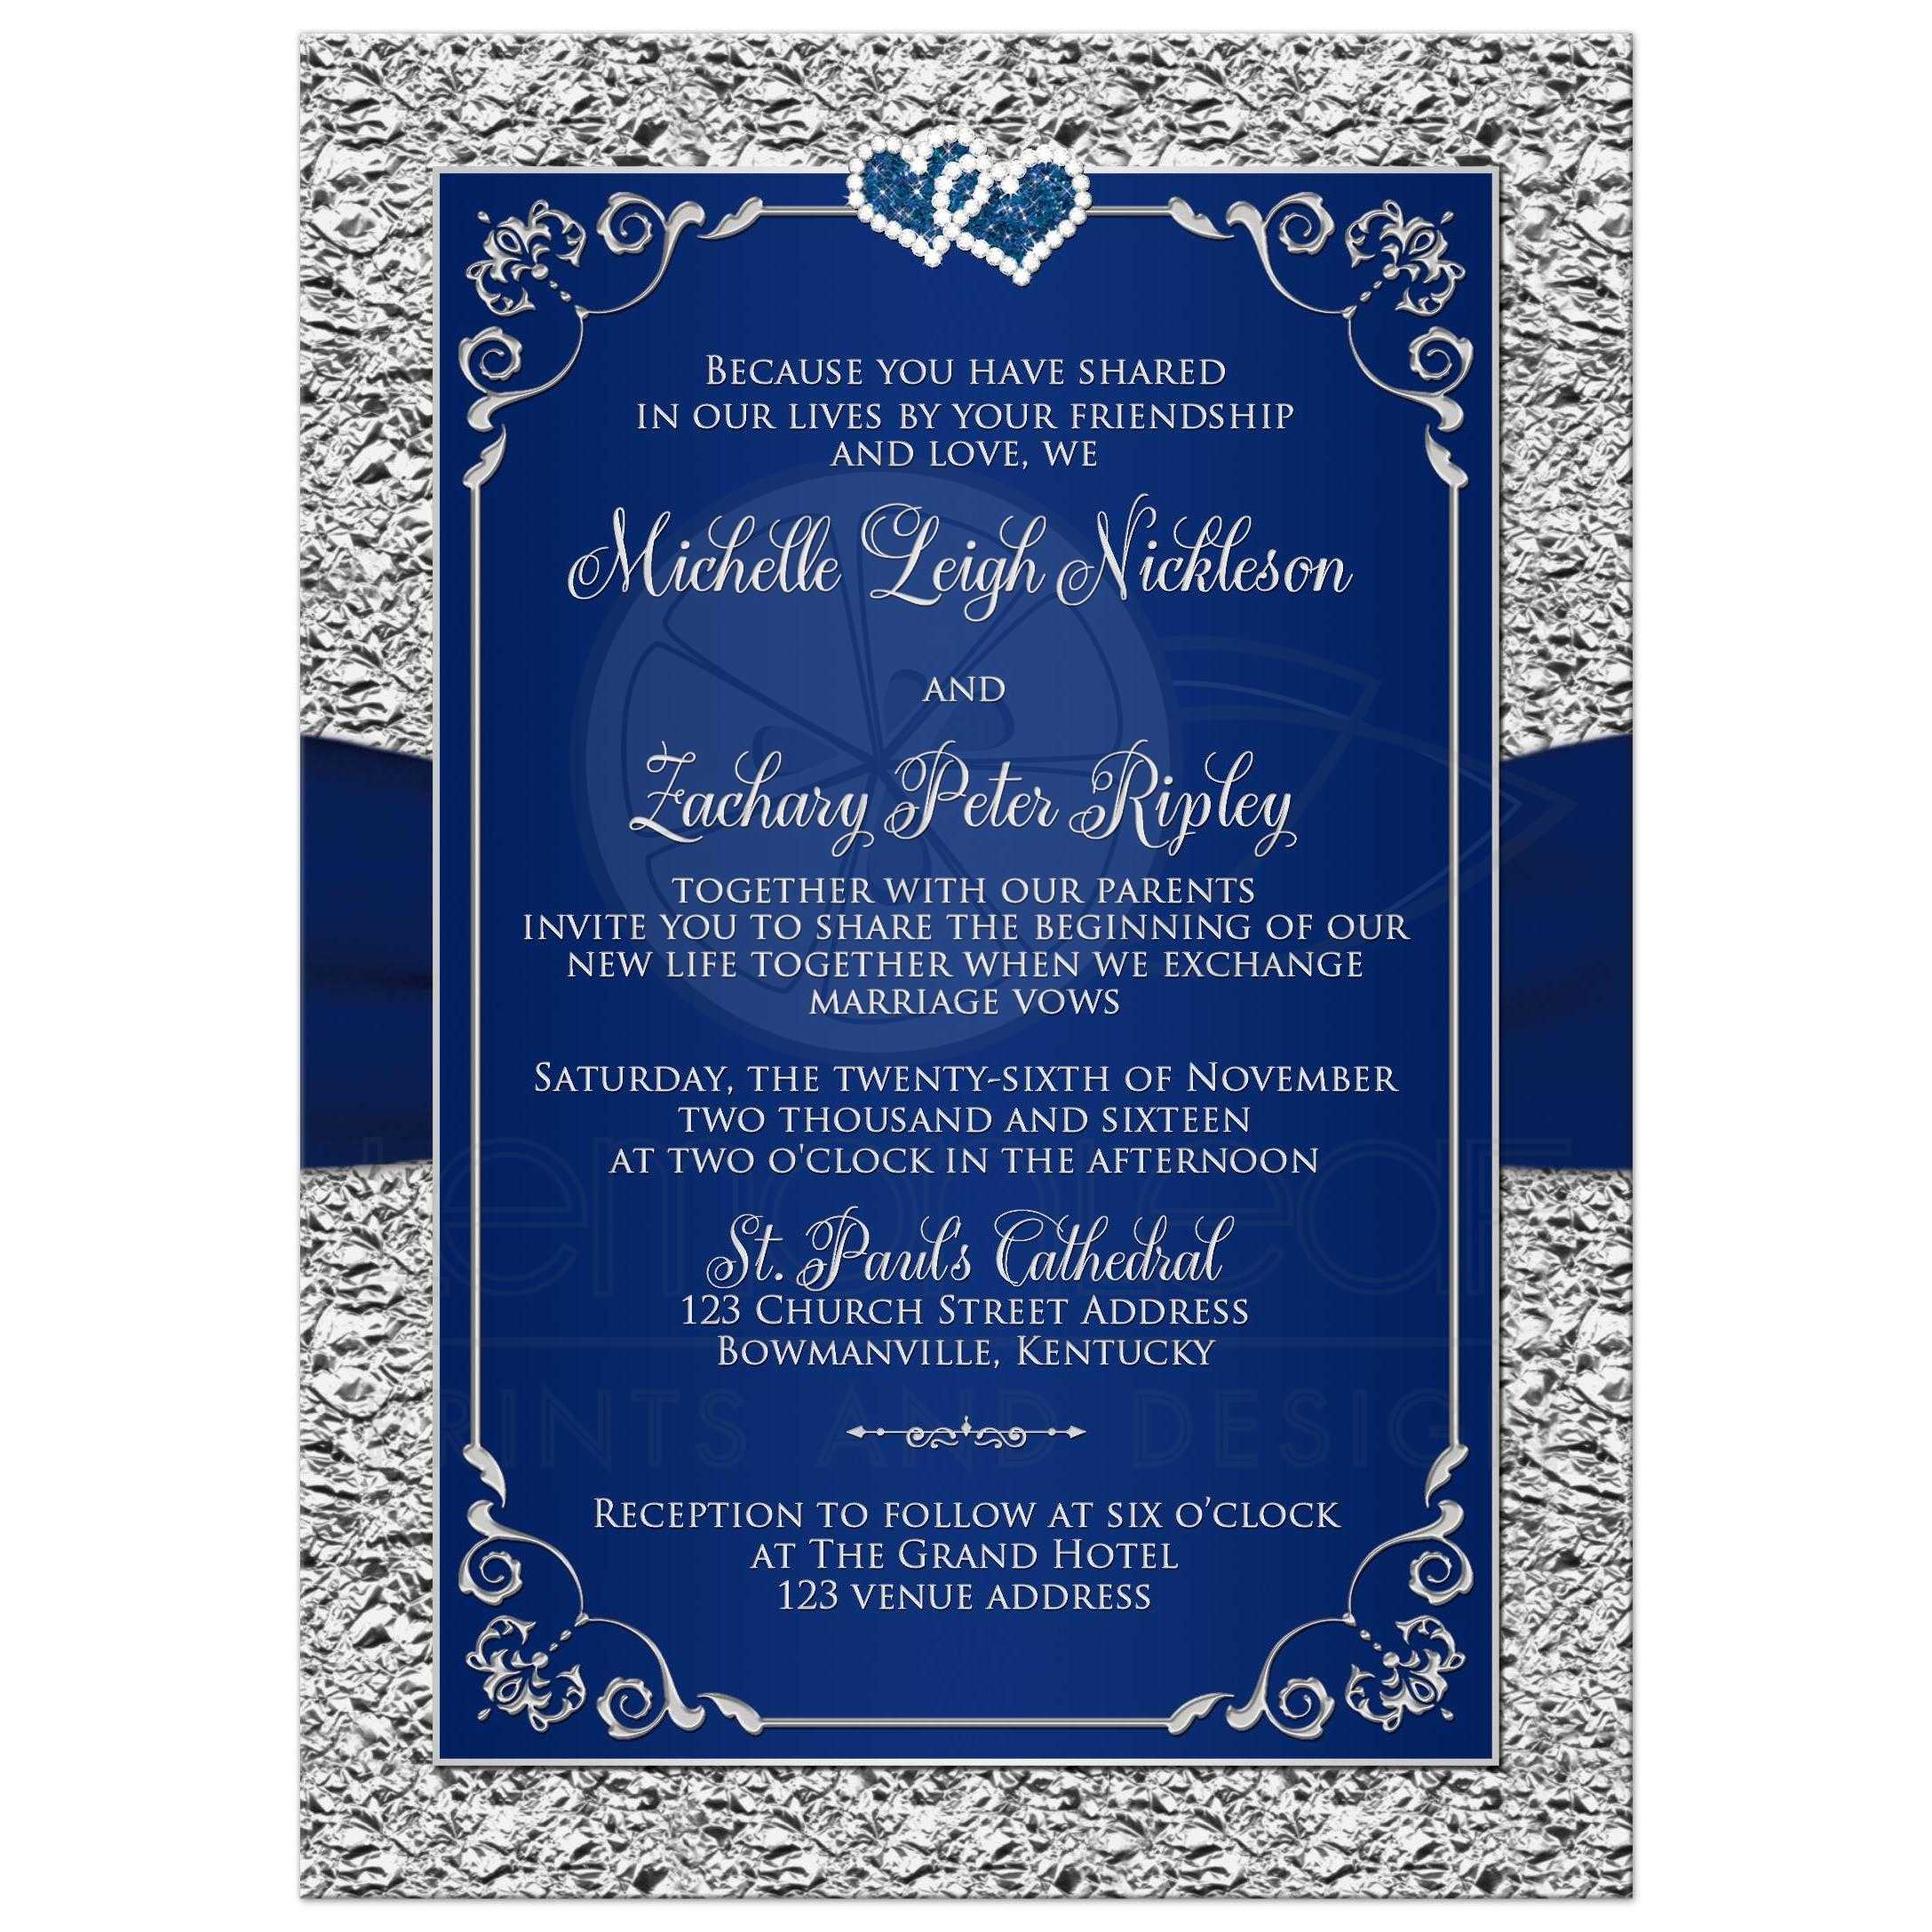 Wedding Invitation | Navy Blue, Silver | Joined Hearts | Floral